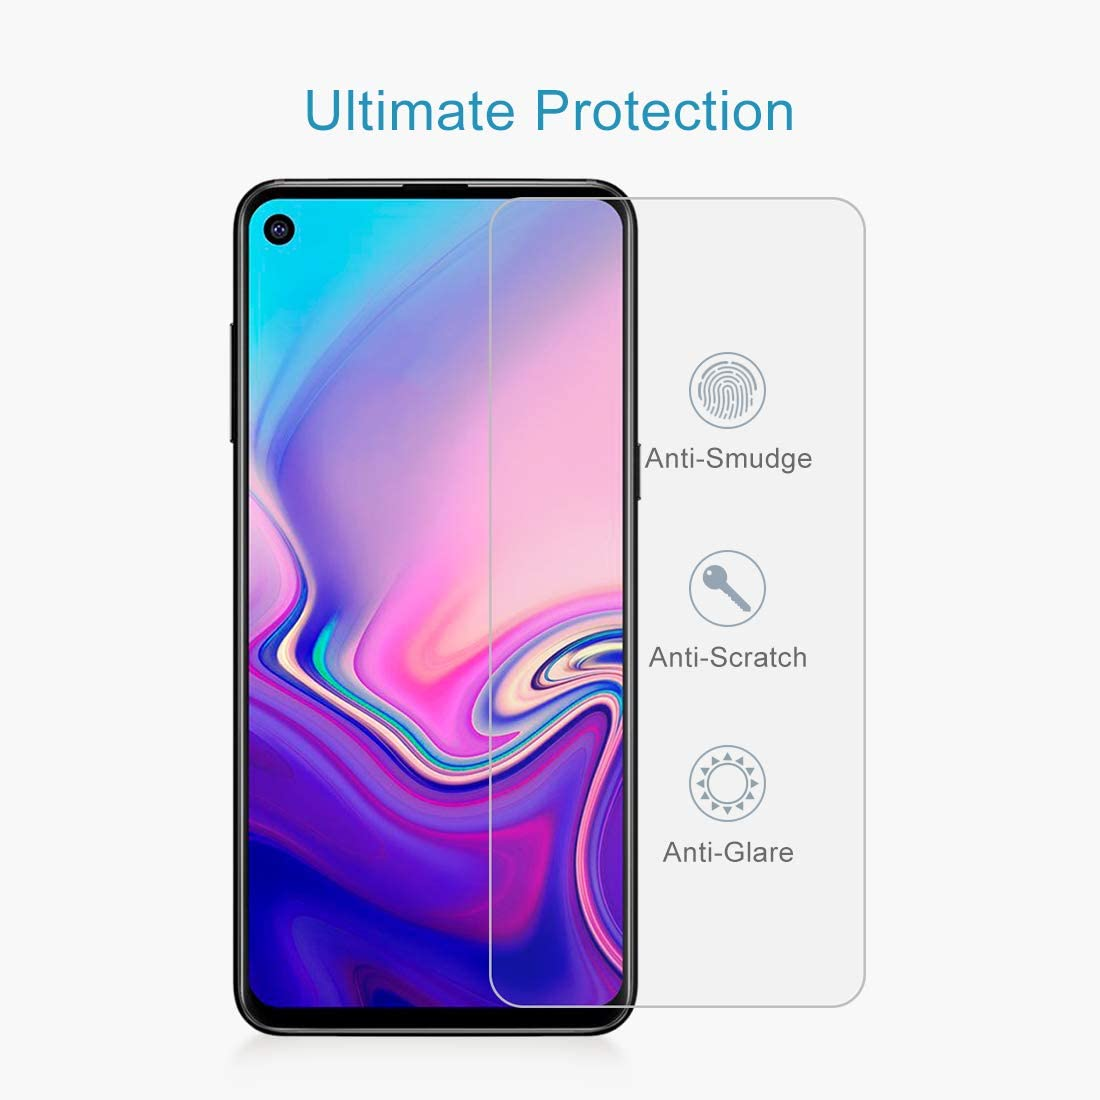 GzPuluz Glass Protector Film 100 PCS 0.26mm 9H 2.5D Explosion-Proof Tempered Glass Film for Galaxy A8s